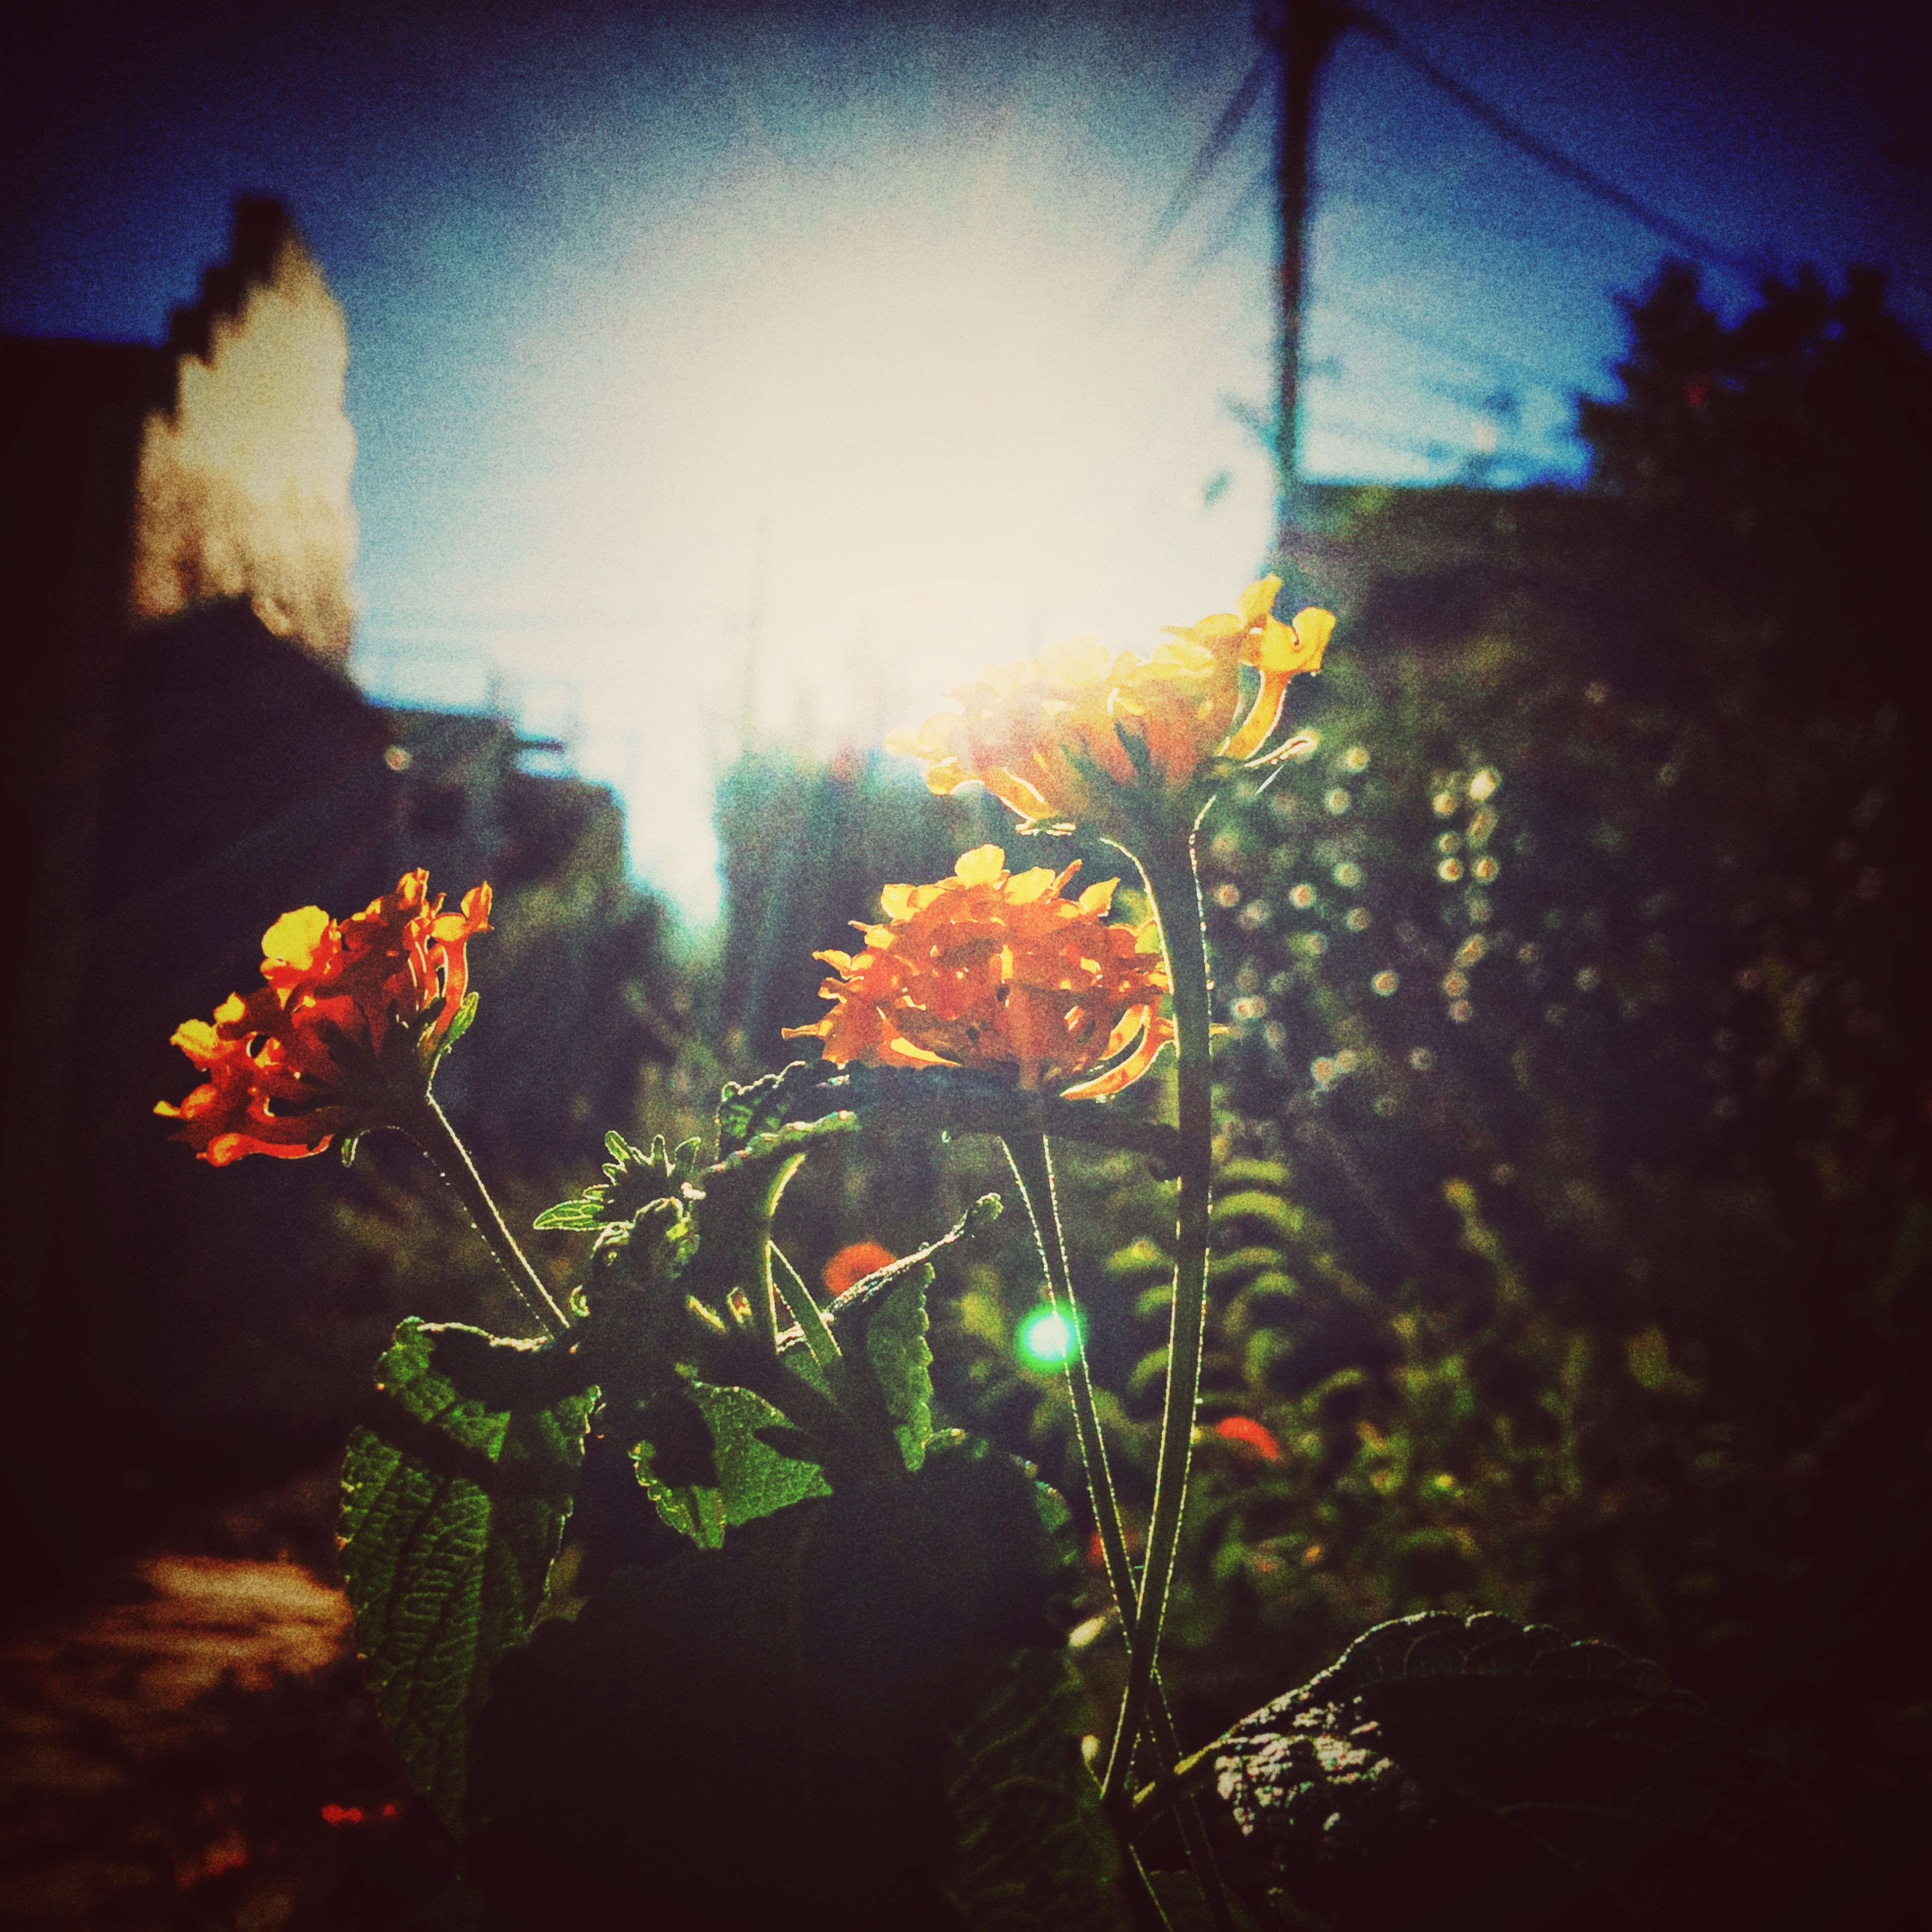 flower, growth, plant, fragility, freshness, nature, beauty in nature, stem, leaf, close-up, yellow, sunlight, focus on foreground, orange color, petal, blooming, outdoors, no people, sunset, flower head